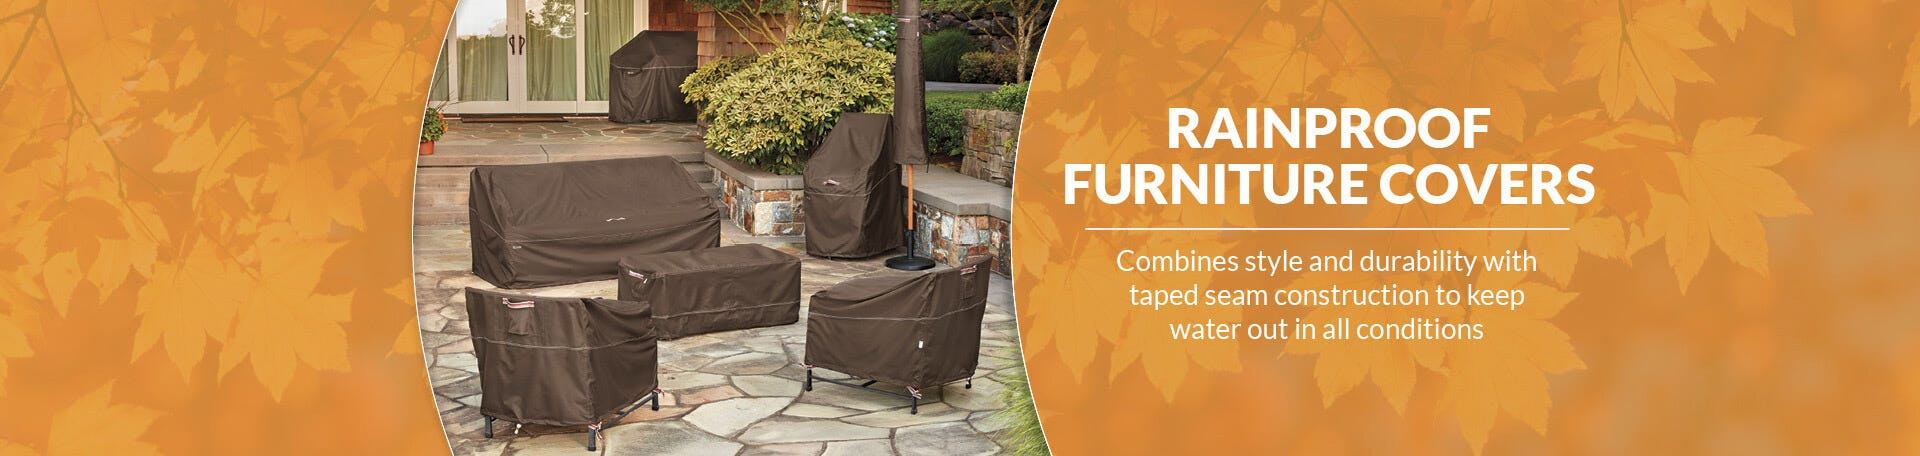 Madrona Furniture Cover Collection